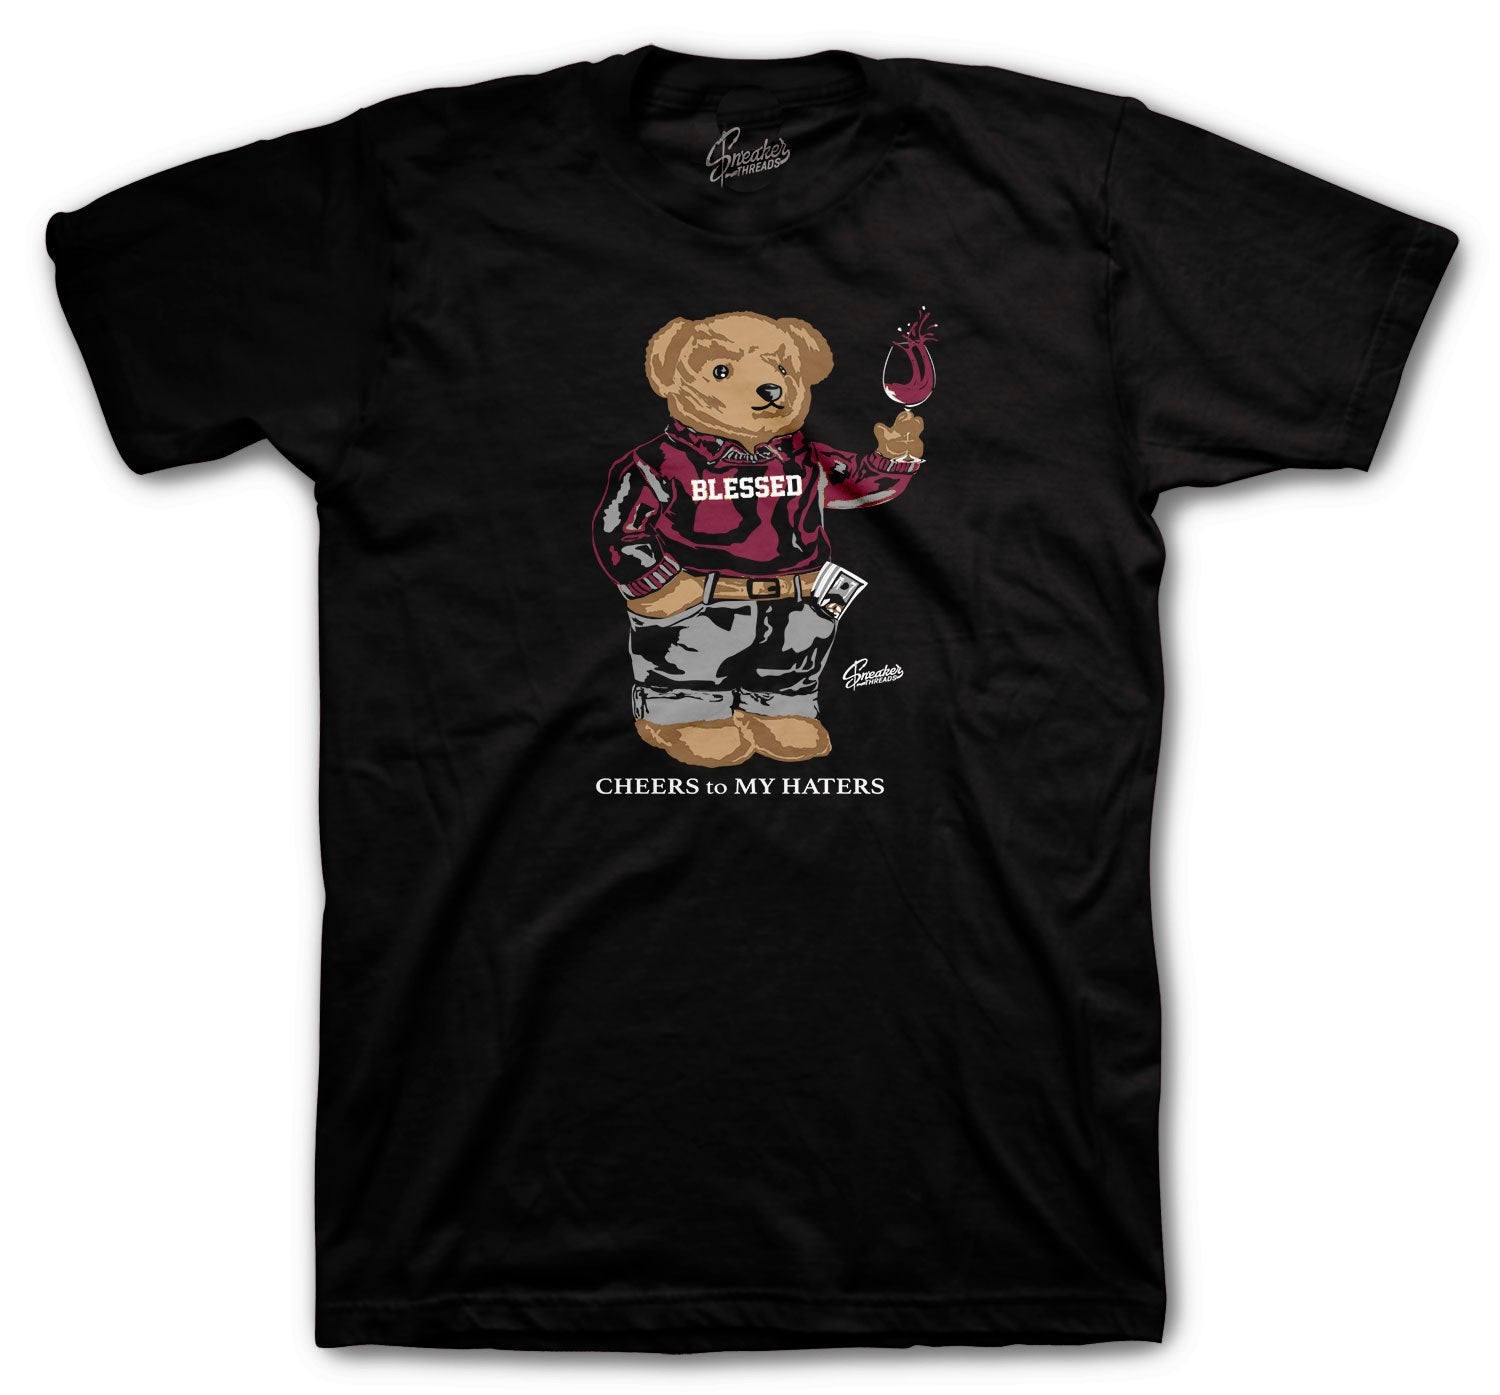 Jordan 4 PSG Cheers Bear Shirt